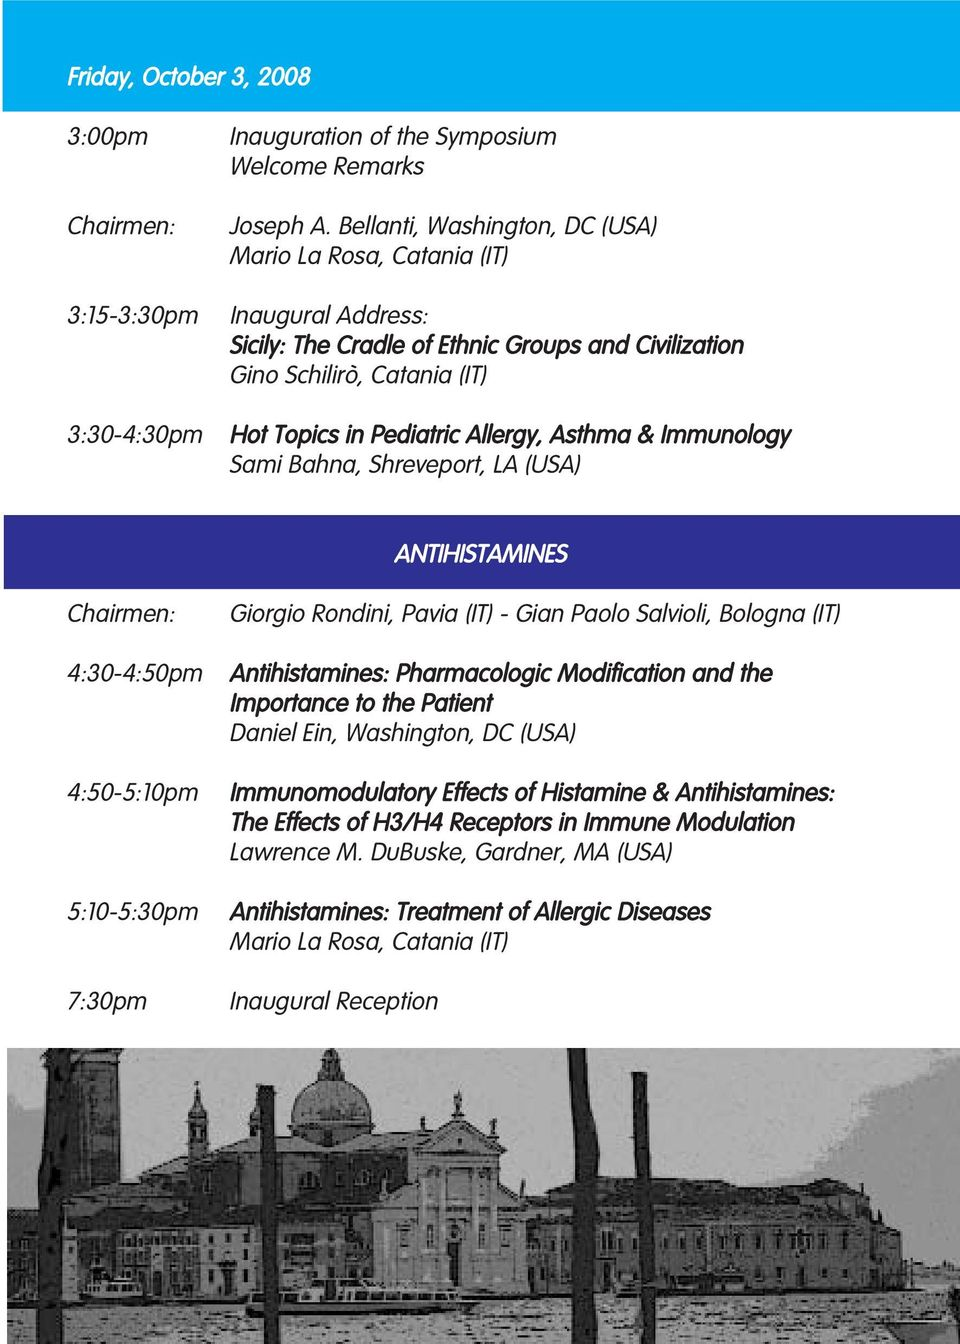 & Immunology Sami Bahna, Shreveport, LA (USA) ANTIHISTAMINES 4:30-4:50pm 4:50-5:10pm 5:10-5:30pm 7:30pm Giorgio Rondini, Pavia (IT) - Gian Paolo Salvioli, Bologna (IT) Antihistamines: Pharmacologic